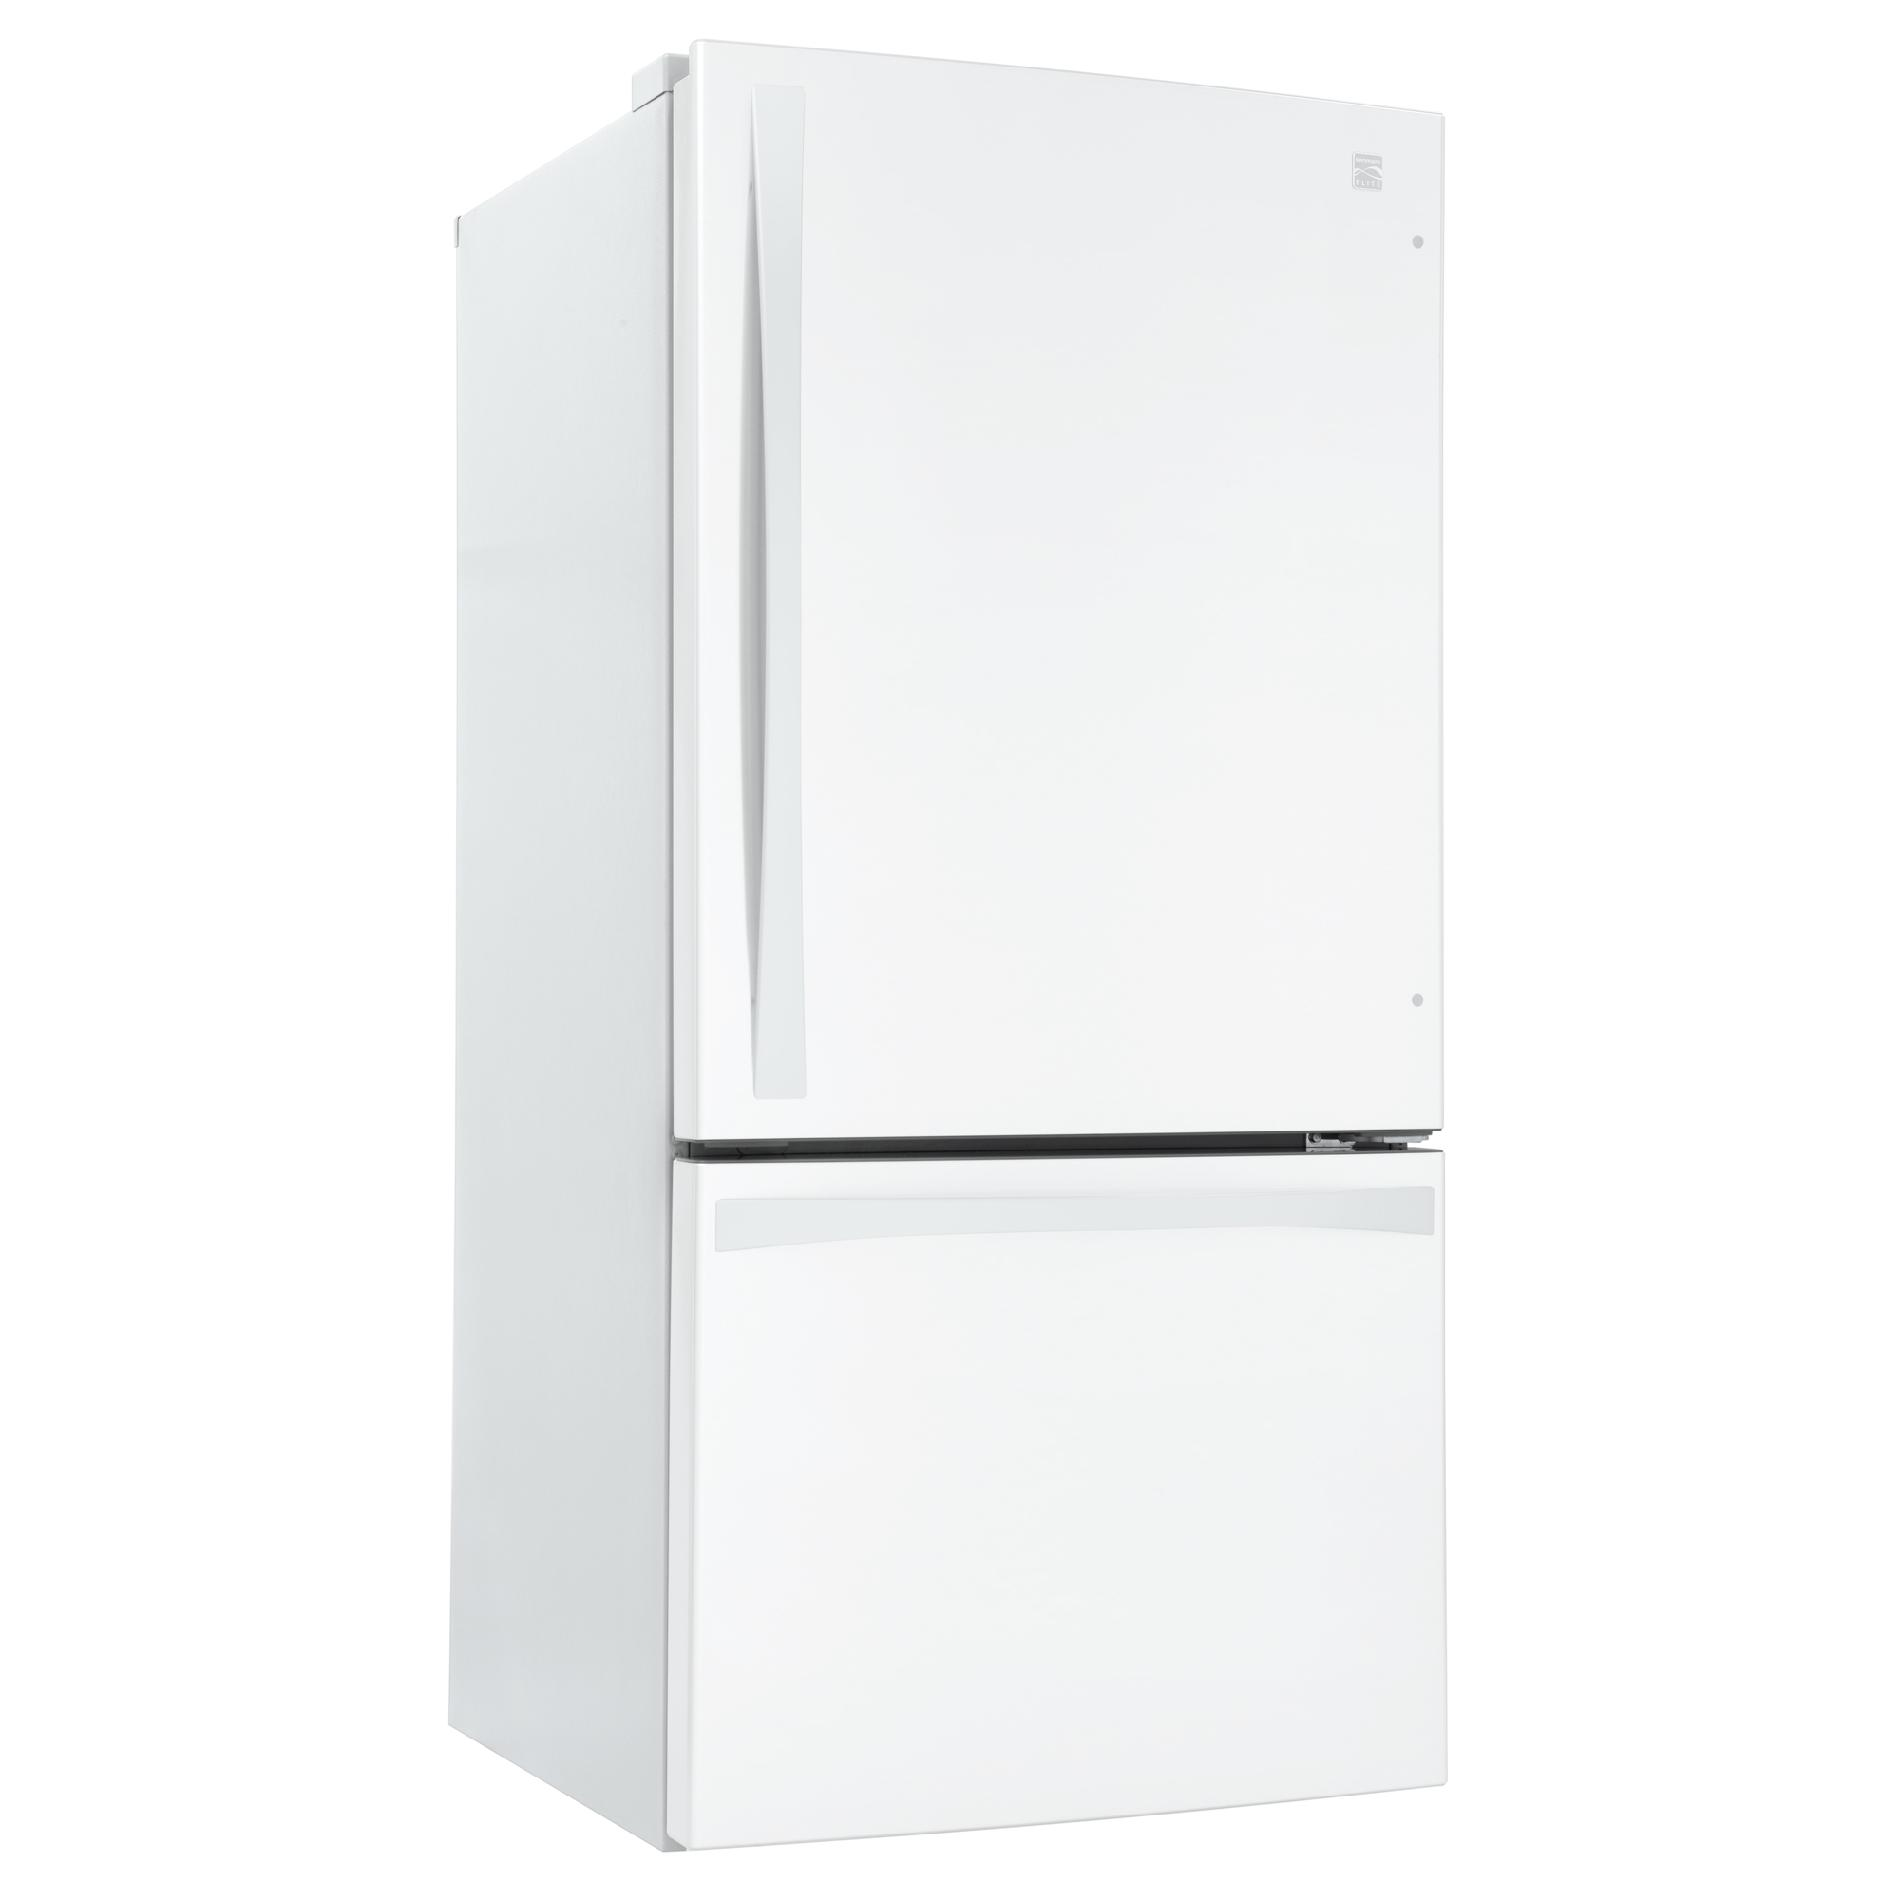 Kenmore Elite 79042 24.1 cu. ft. Bottom-Freezer Refrigerator – White